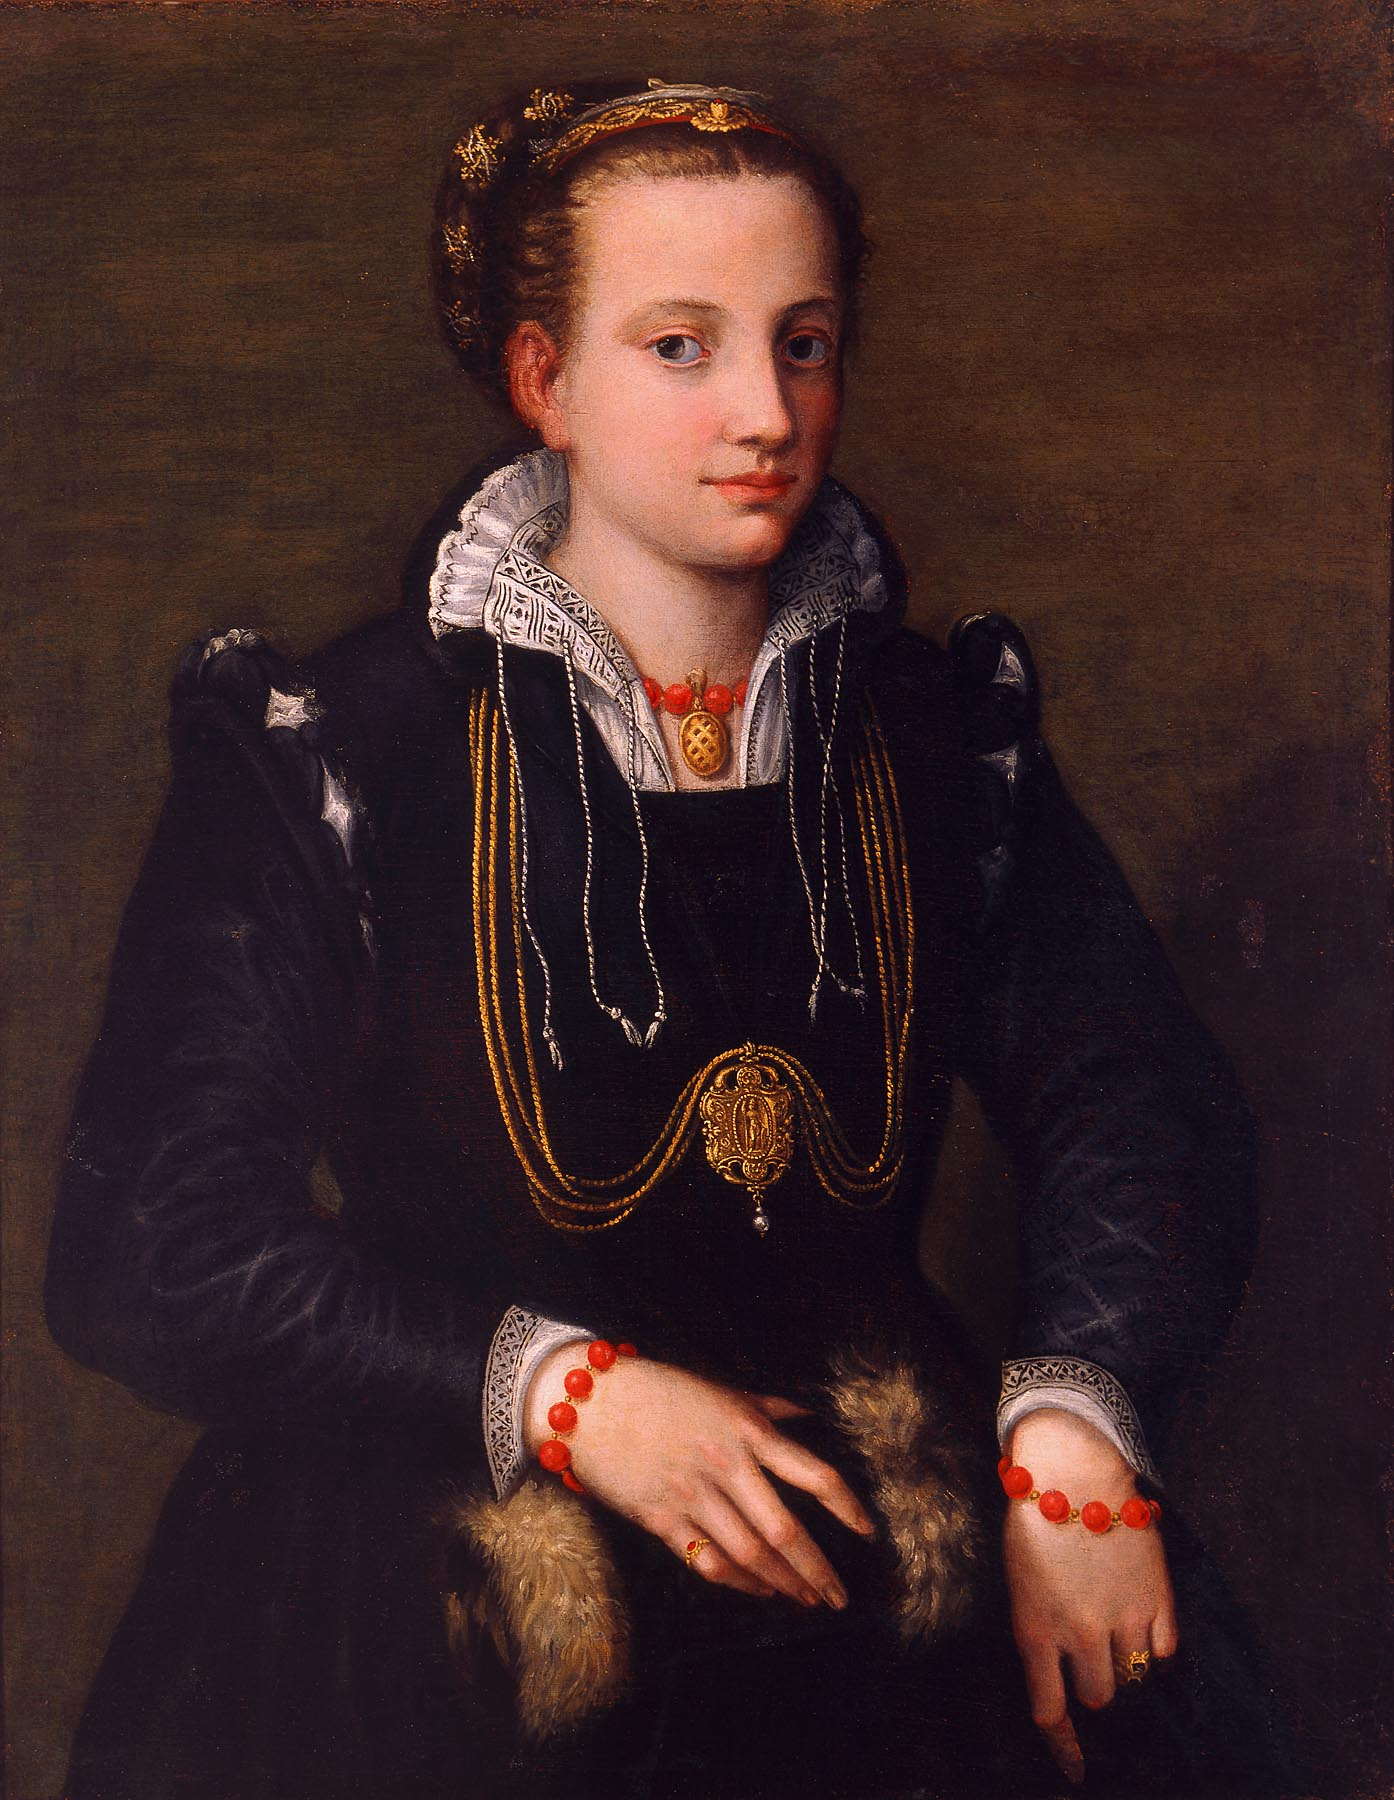 Sofonisba Anguissola (Italian, 1532–1625) The Artist's Sister Minerva Anguissola, ca. 1564 Oil on canvas 33 1/2 x 26 in. (85.09 x 66.04 cm) Layton Art Collection, Gift of the Family of Mrs. Frederick Vogel, Jr. L1952.1 Photo credit P. Richard Eells